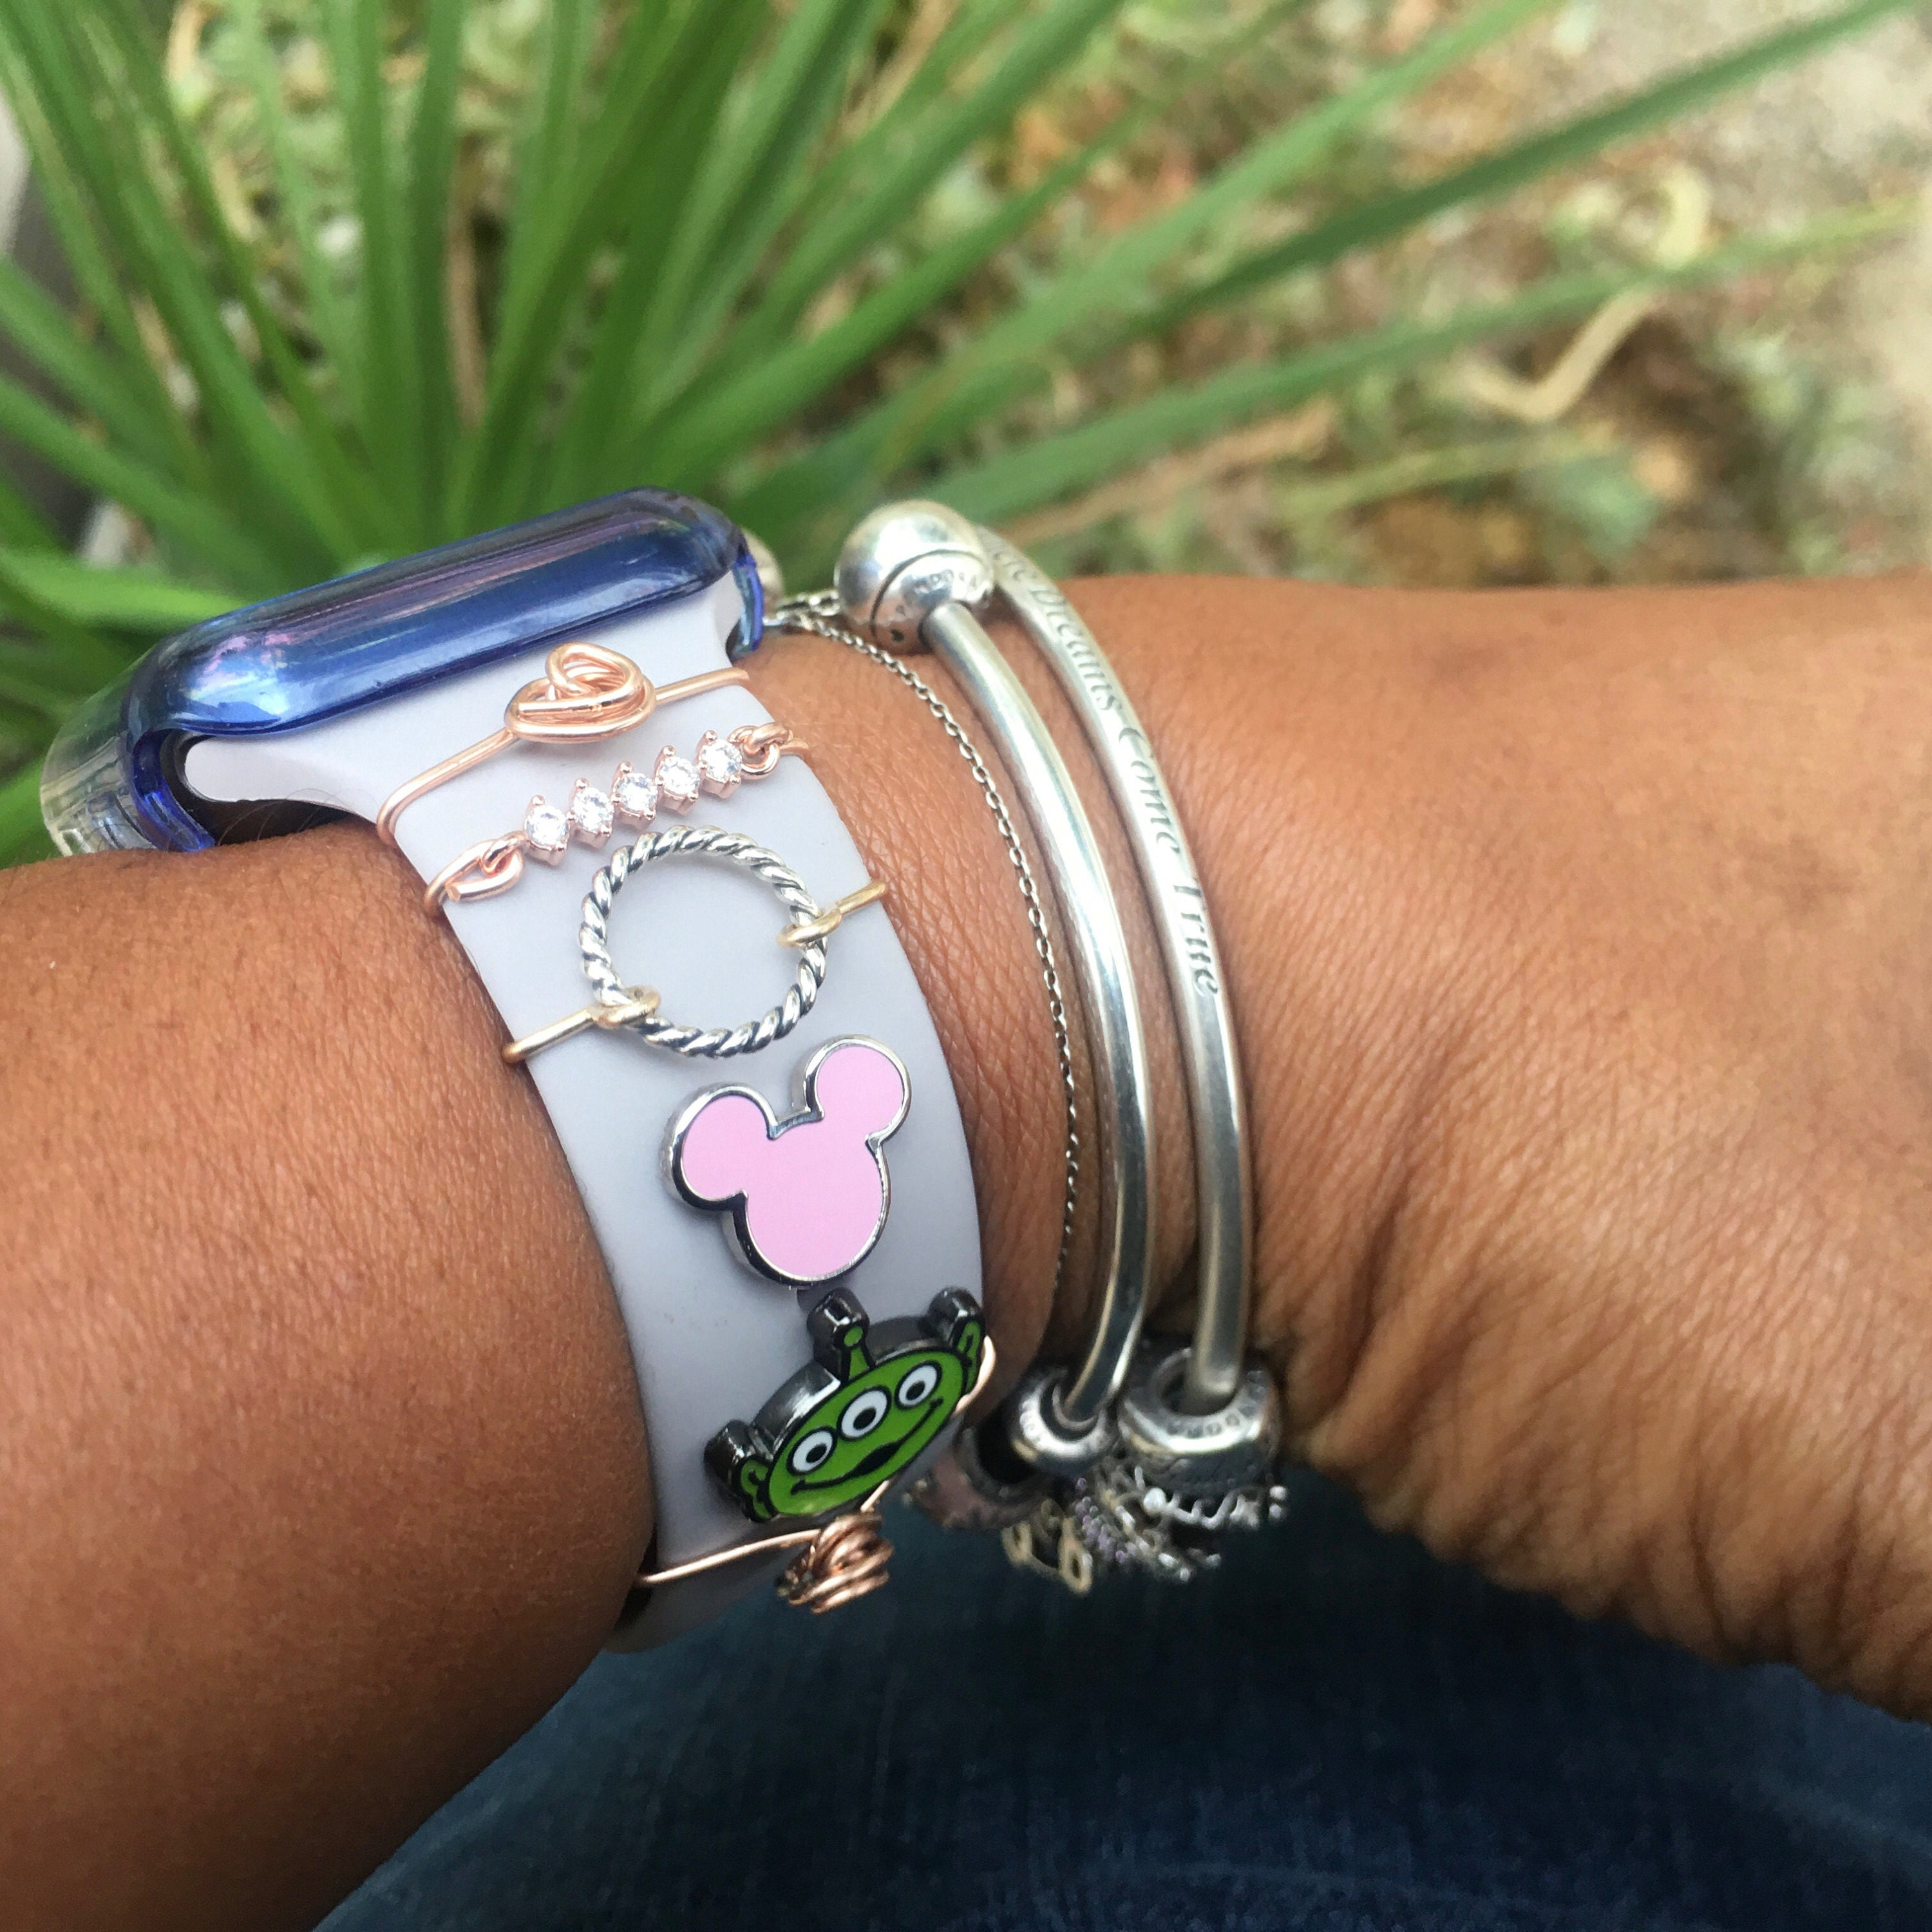 Chanelle Hunt added a photo of their purchase